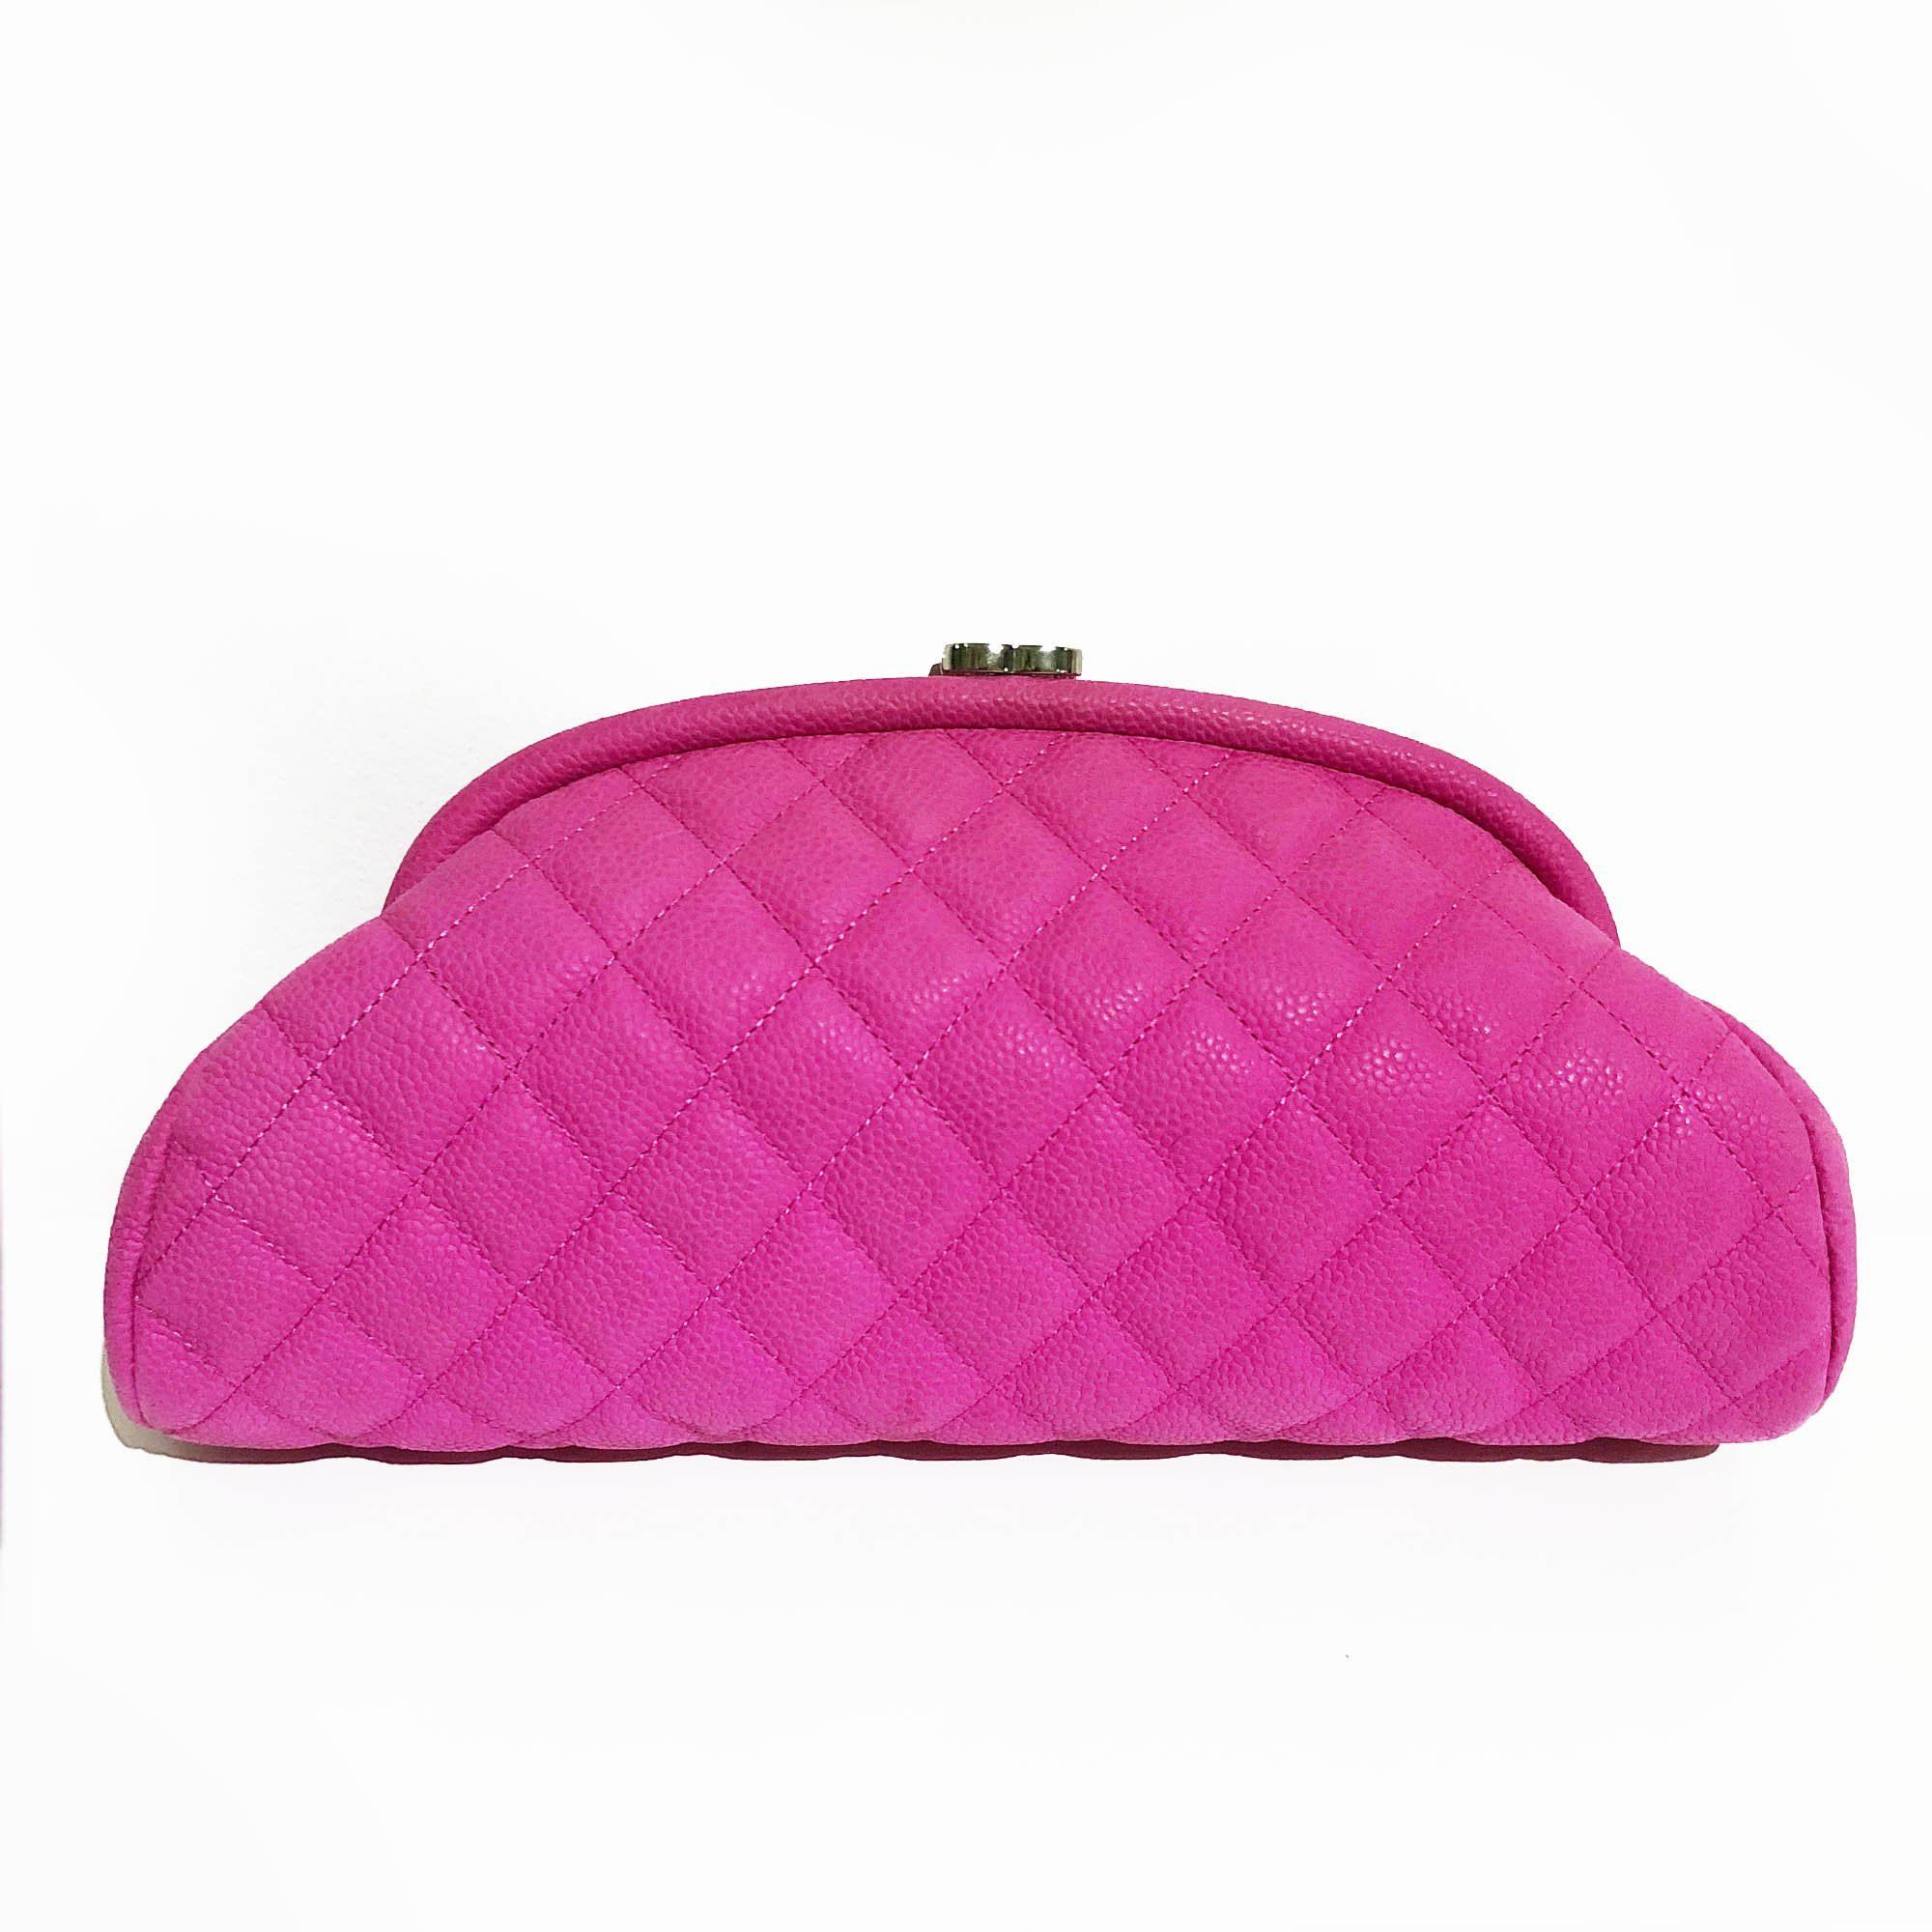 Chanel Pink Caviar Matte Leather Timeless Clutch Bag